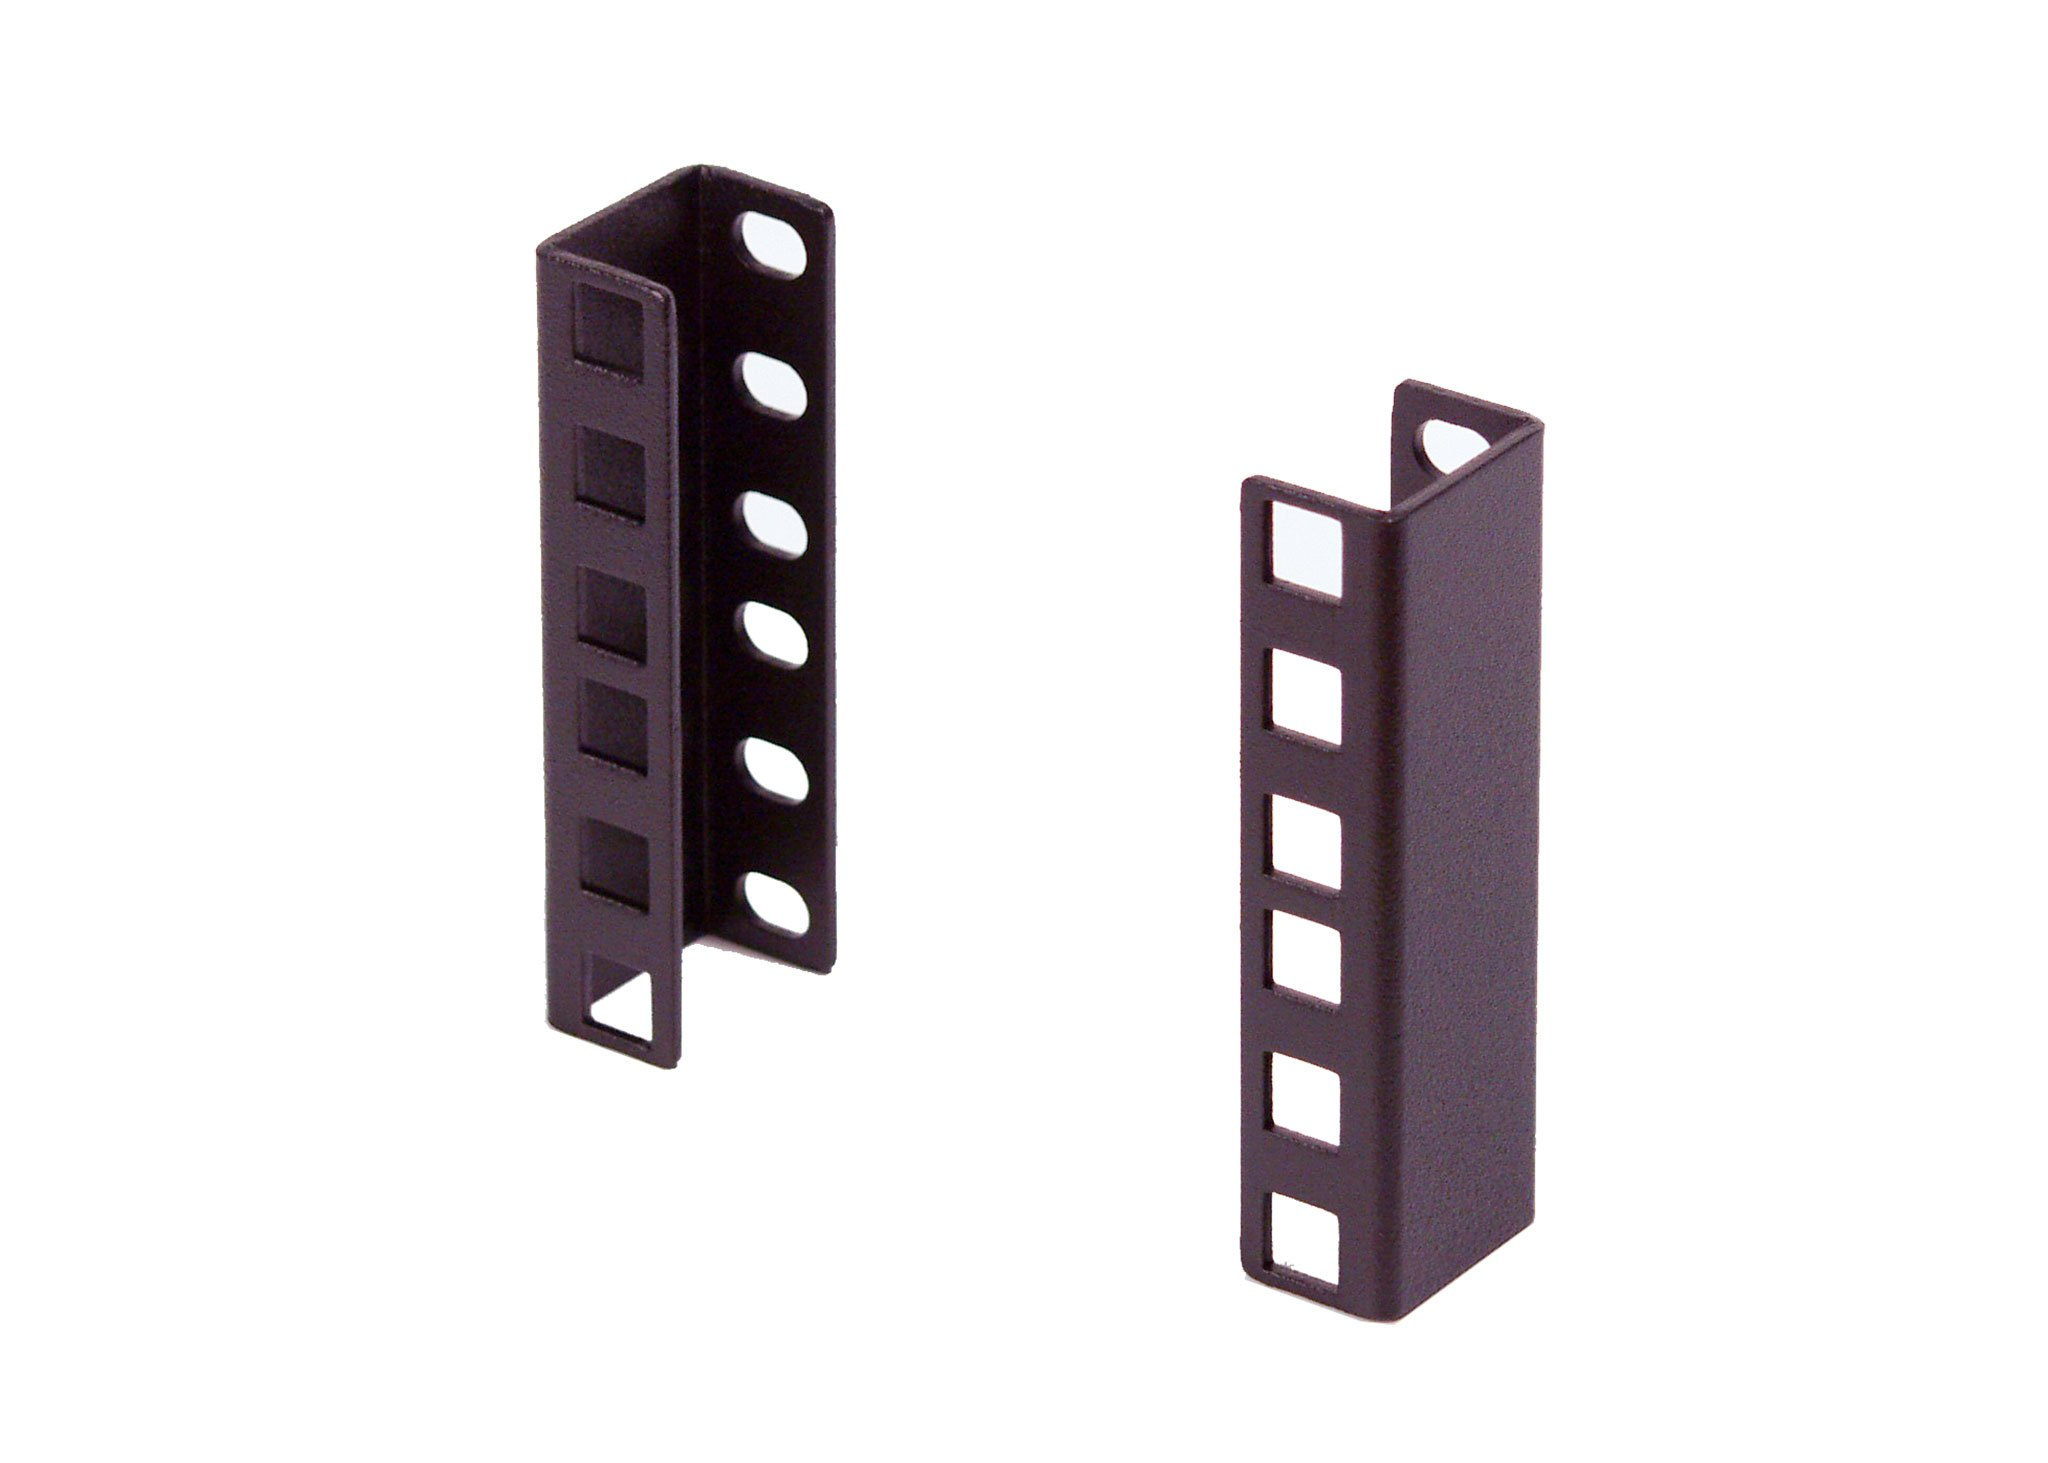 RCB1061-2U Rackmount 2U Rack 1.1'' Extender for 19'' or 23'' Rack Cabinet or wall mount cabinet